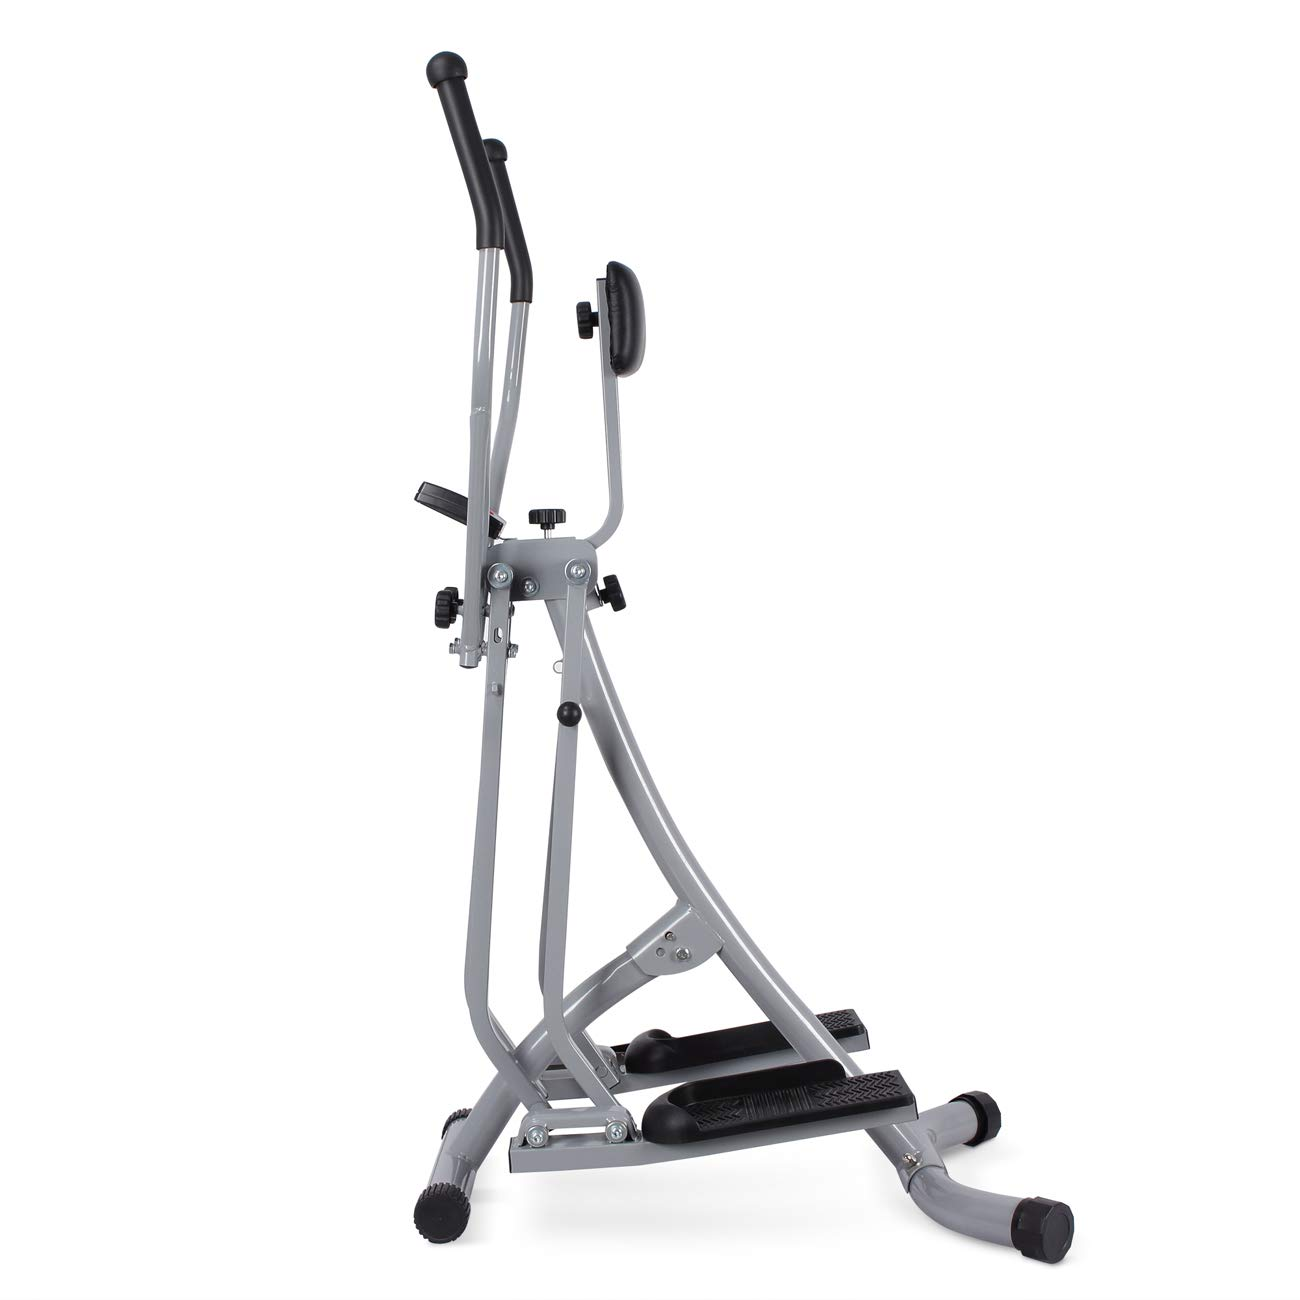 Akonza Air Walker Glider Stride Elliptical Trainer Fitness Exercise Step Machine Workout Equipment w/Computer Monitor by Akonza (Image #2)